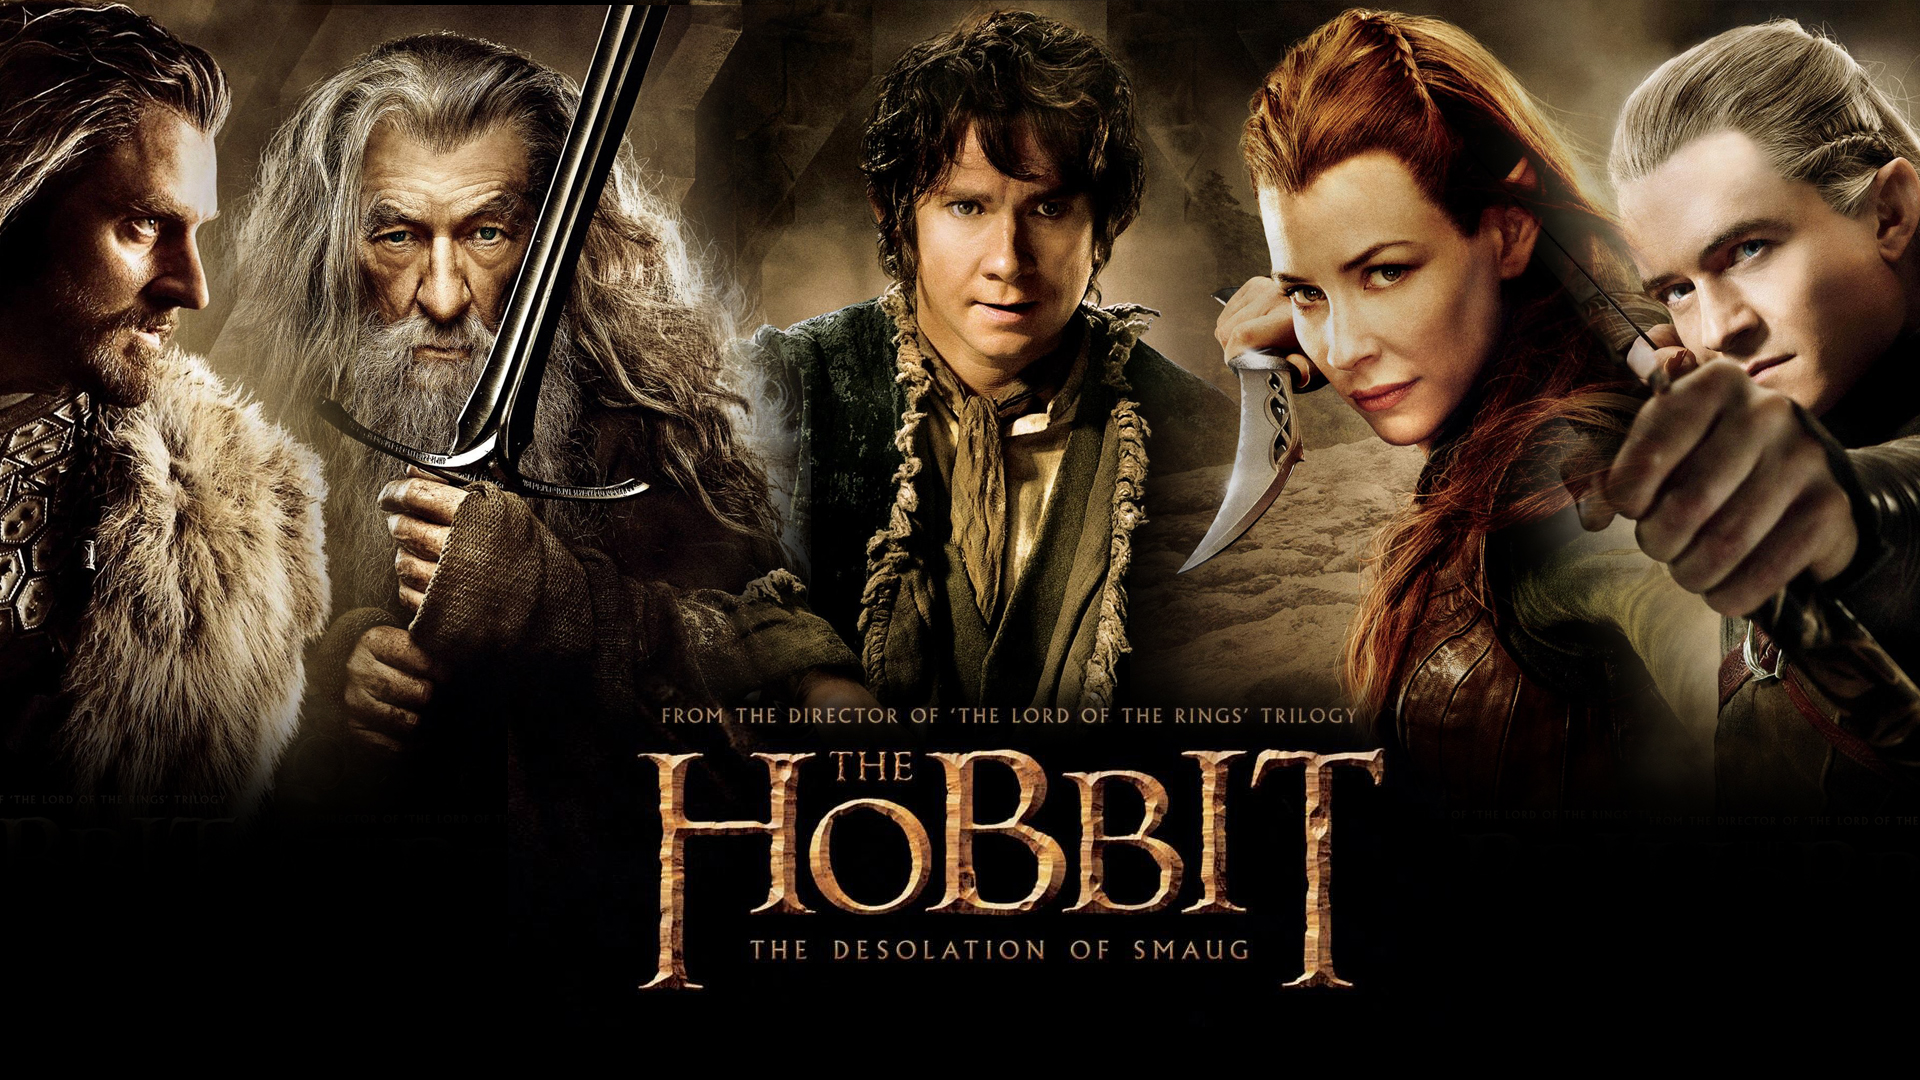 The Hobbit The Desolation of Smaug Movie   Wallpaper High Definition 1920x1080